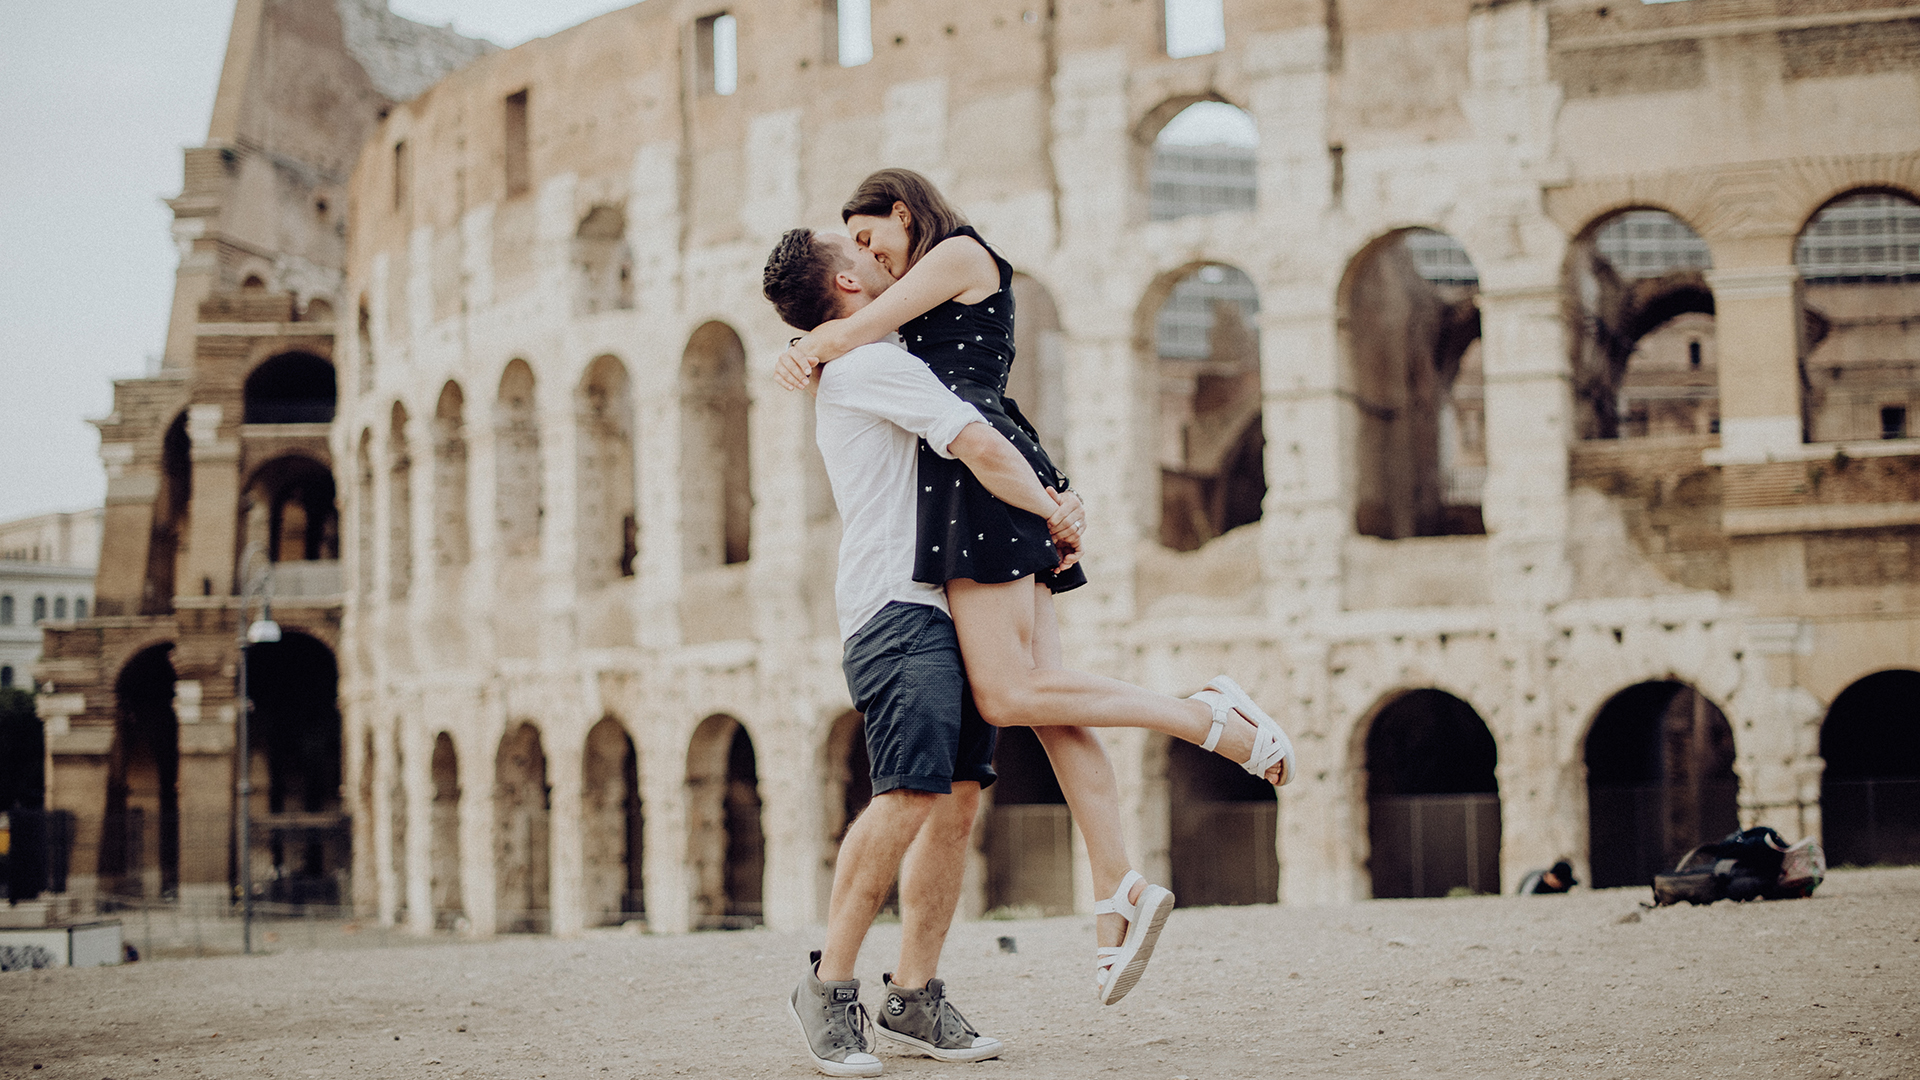 Rome engagement session under the colosseum - Servizio forografico di coppia a Roma sotto al Colosseo - Paola Simonelli Italian emotional and wedding photographer in Rome - Paola Simonelli fotografa di matrimoni a Roma